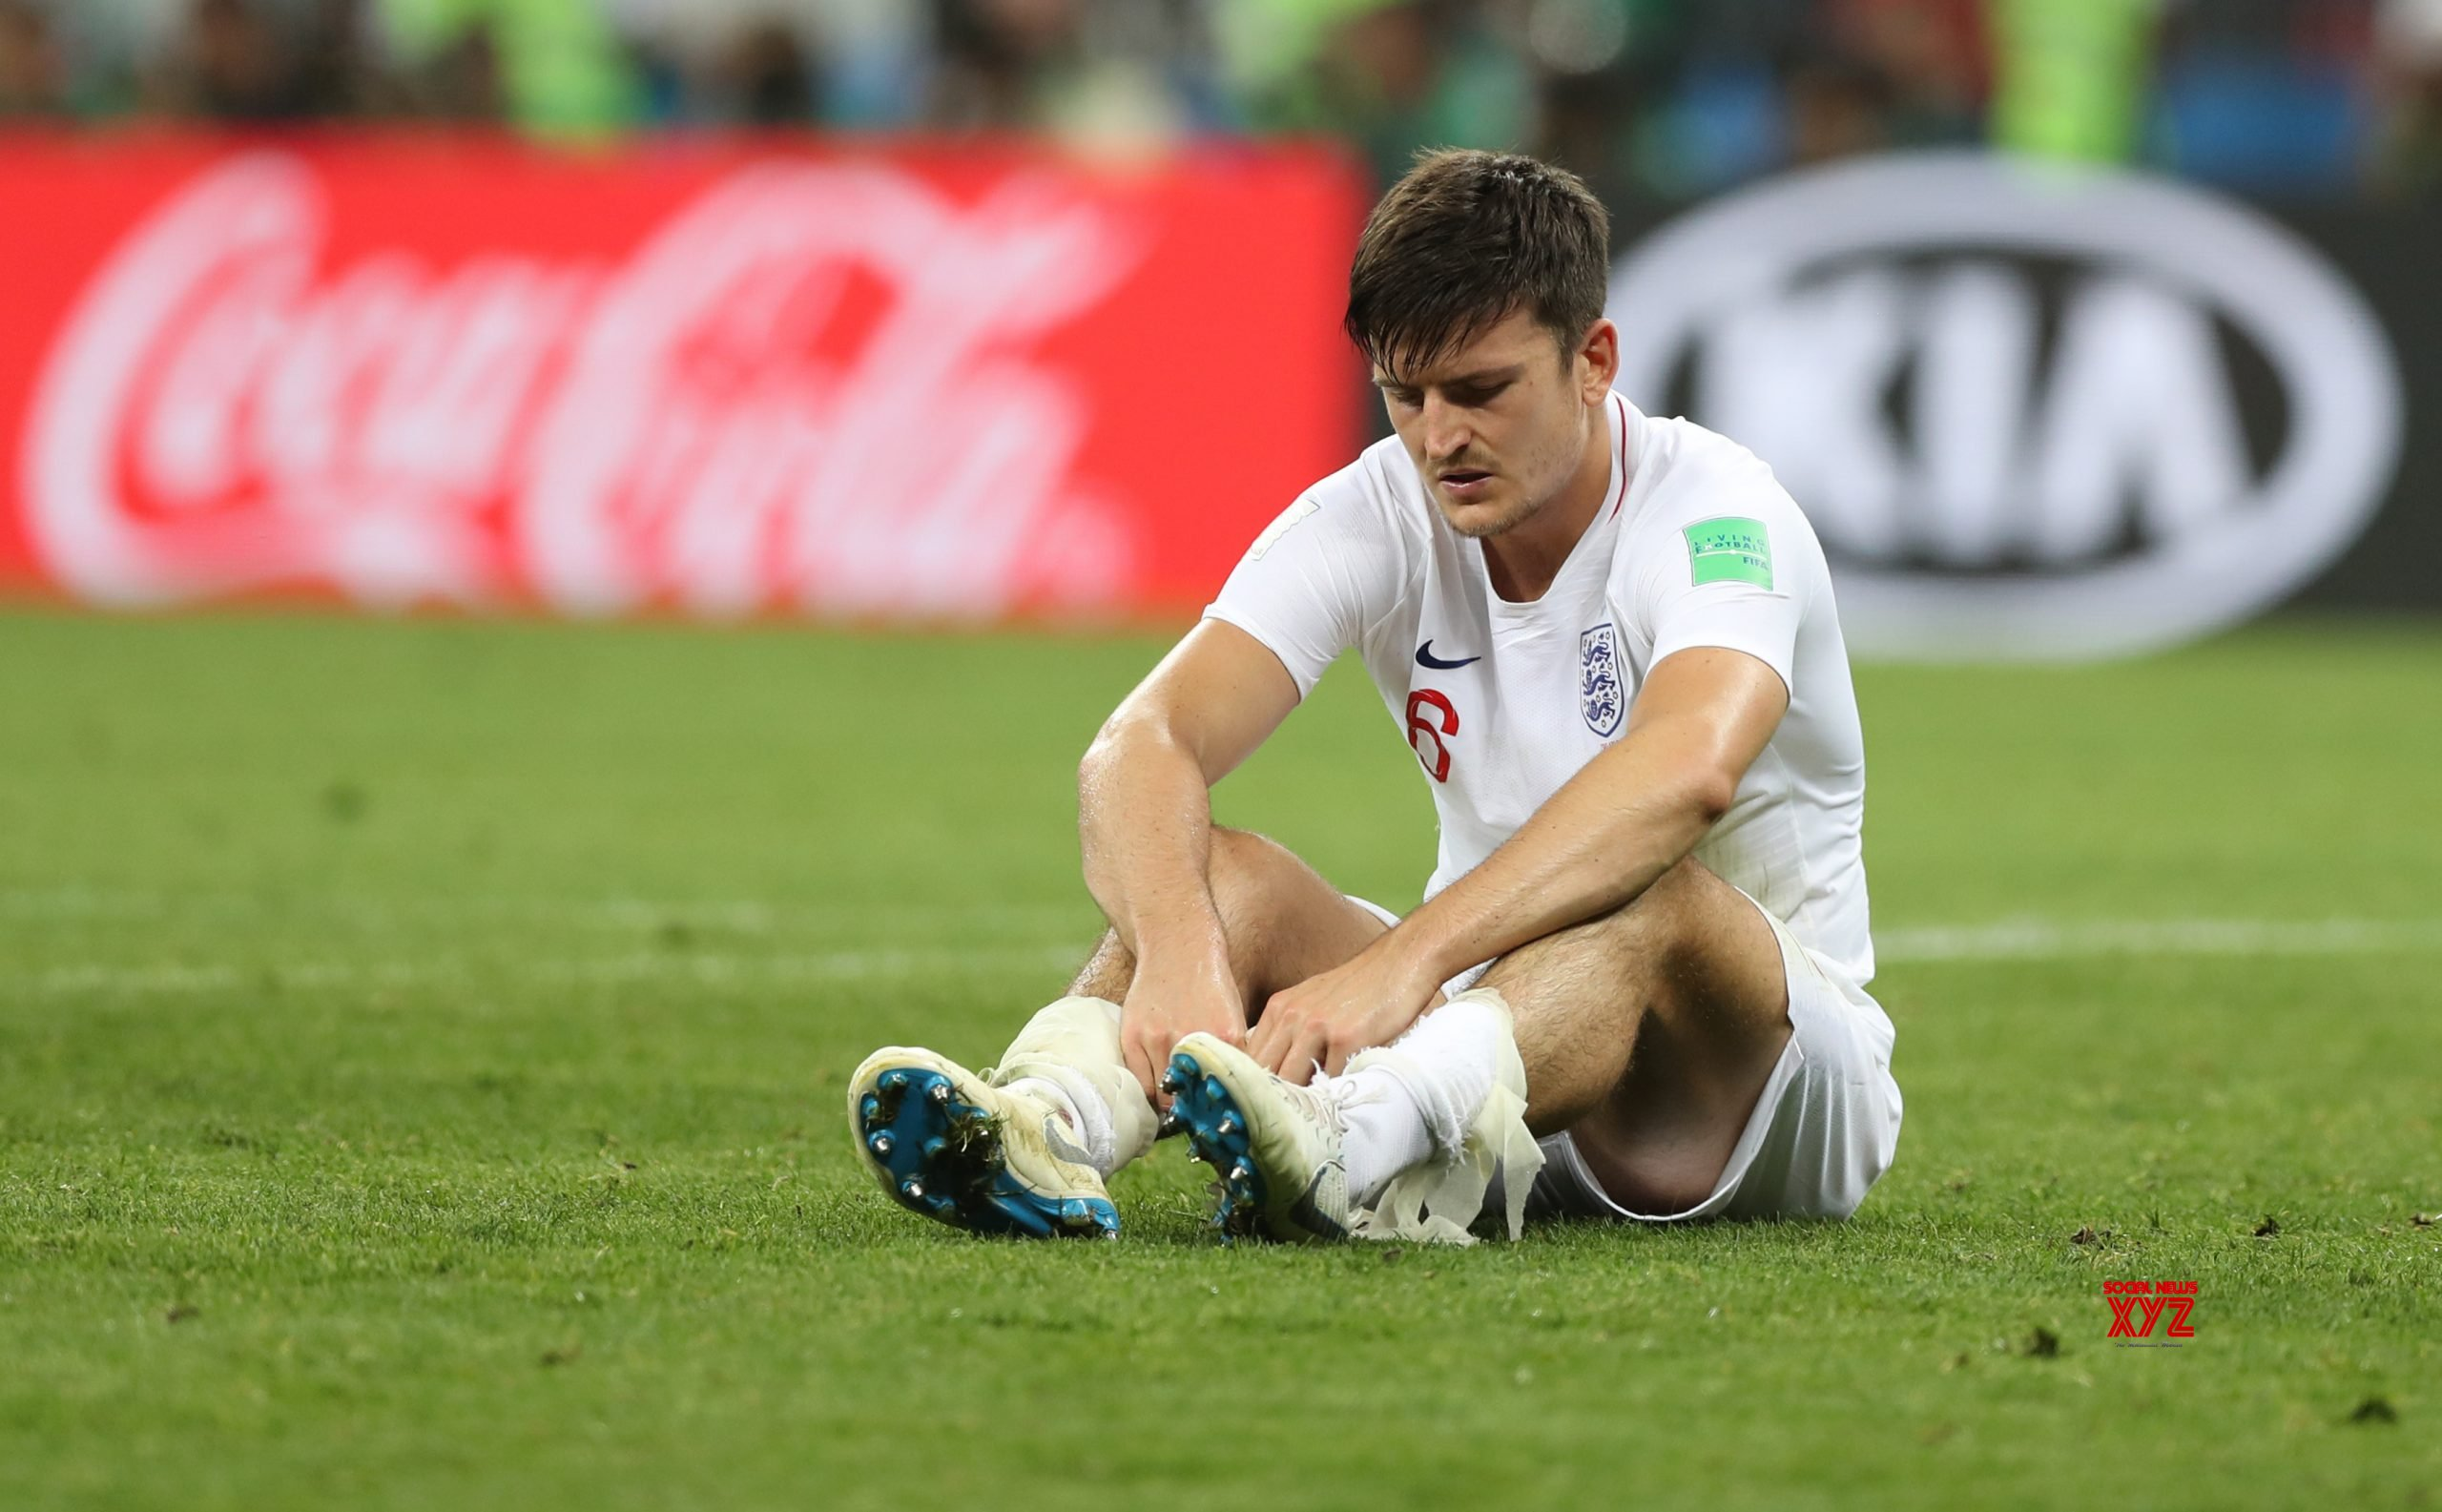 Seems a safe environment, says Maguire after training return